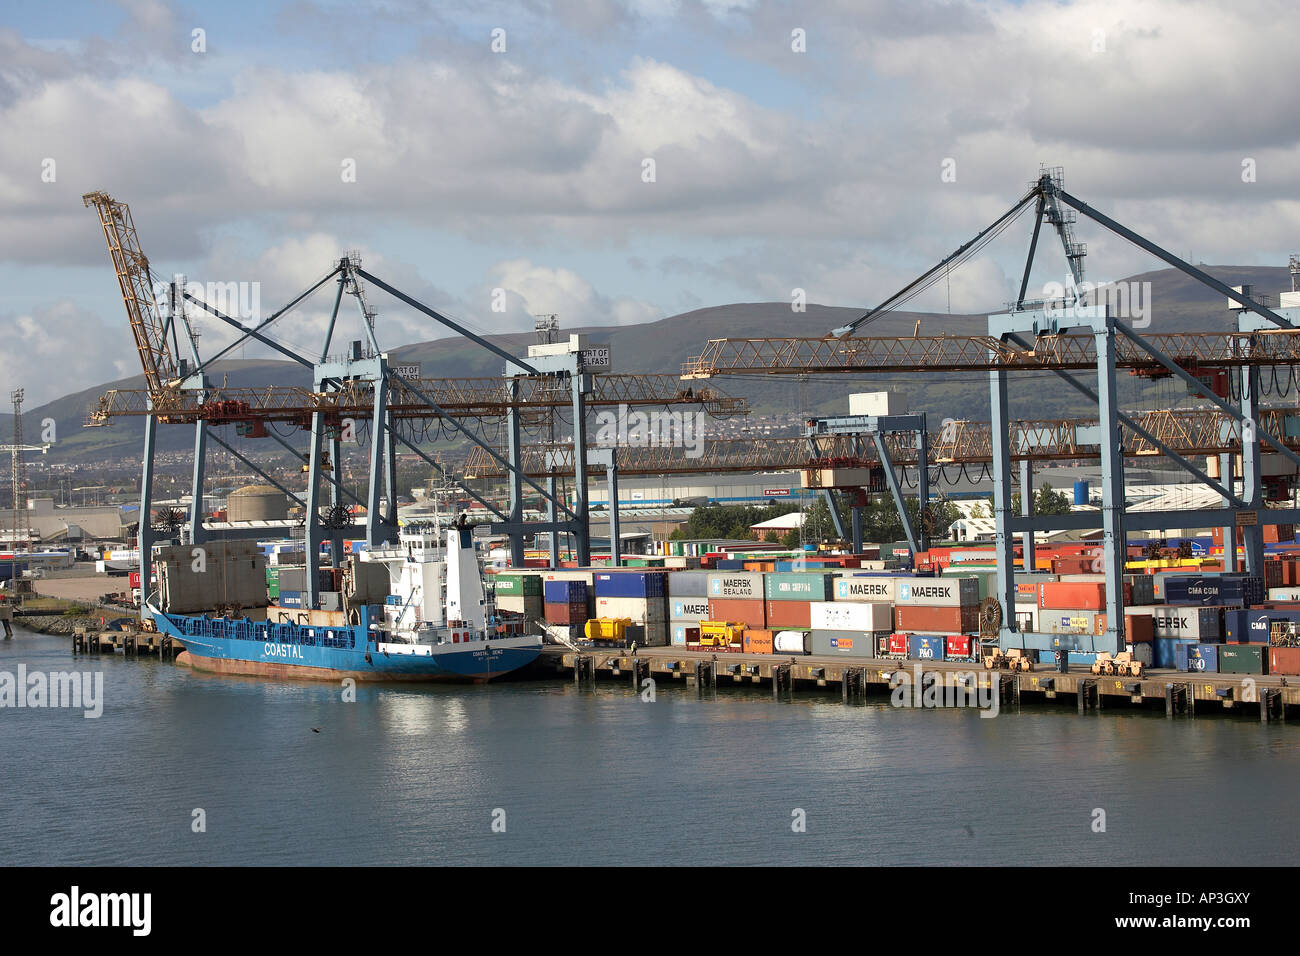 Containers being loaded onto the Coastal Deniz ship in Port of Belfast - Stock Image